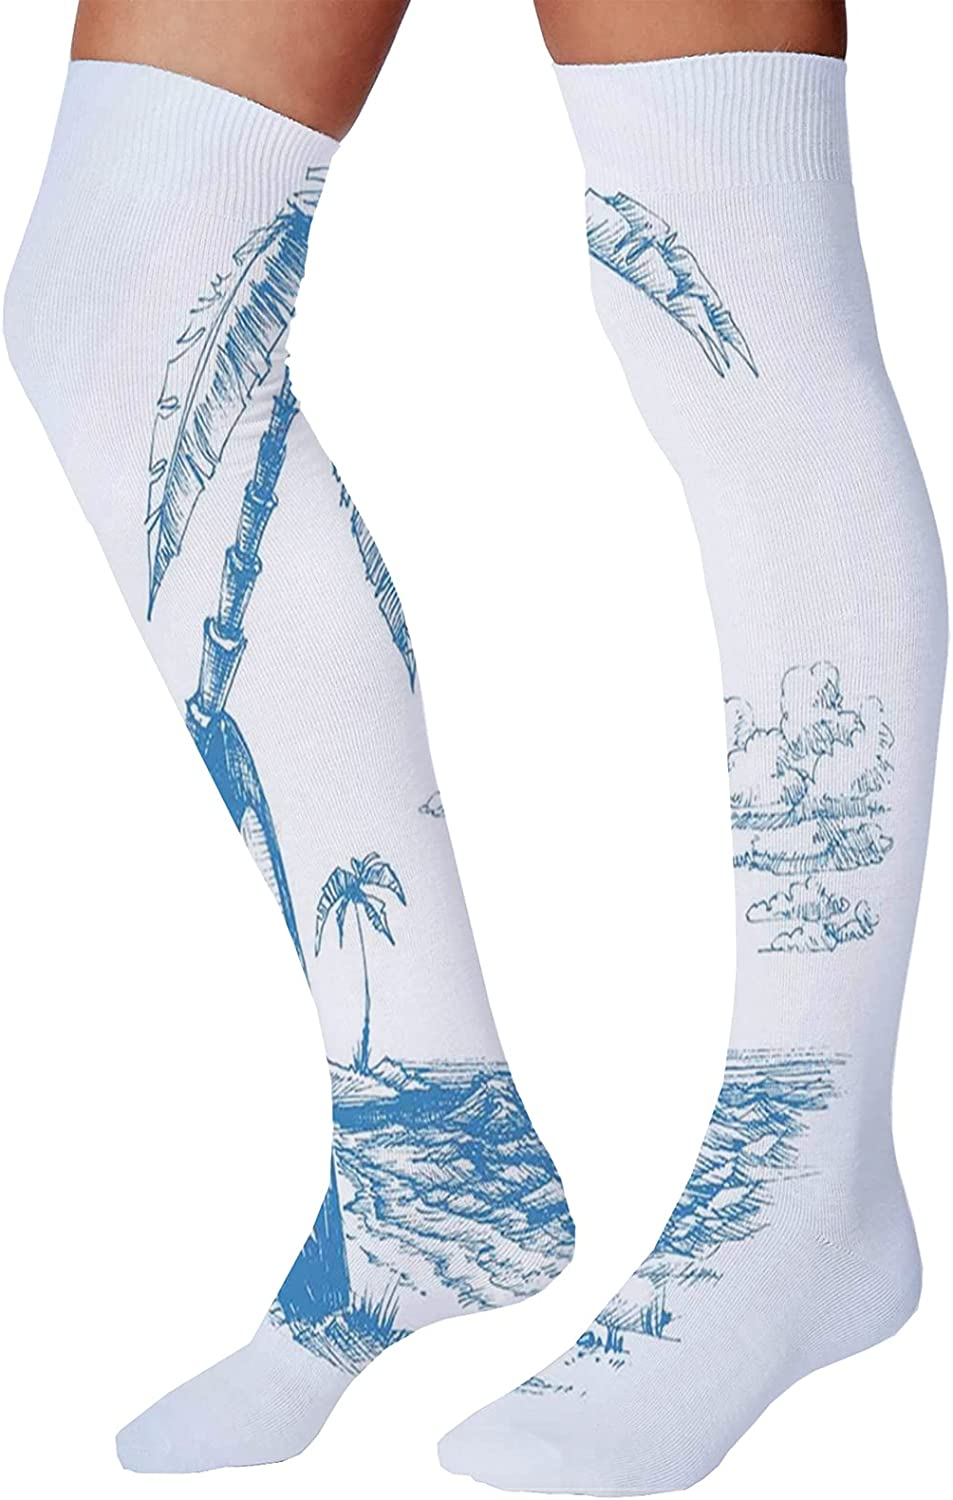 Unisex Dress Cool Colorful Fancy Novelty Funny Casual Combed Cotton Crew SocksContemporary Sketch Illustration Hawaiian Beach with Surfboard Palms and Ocean Water